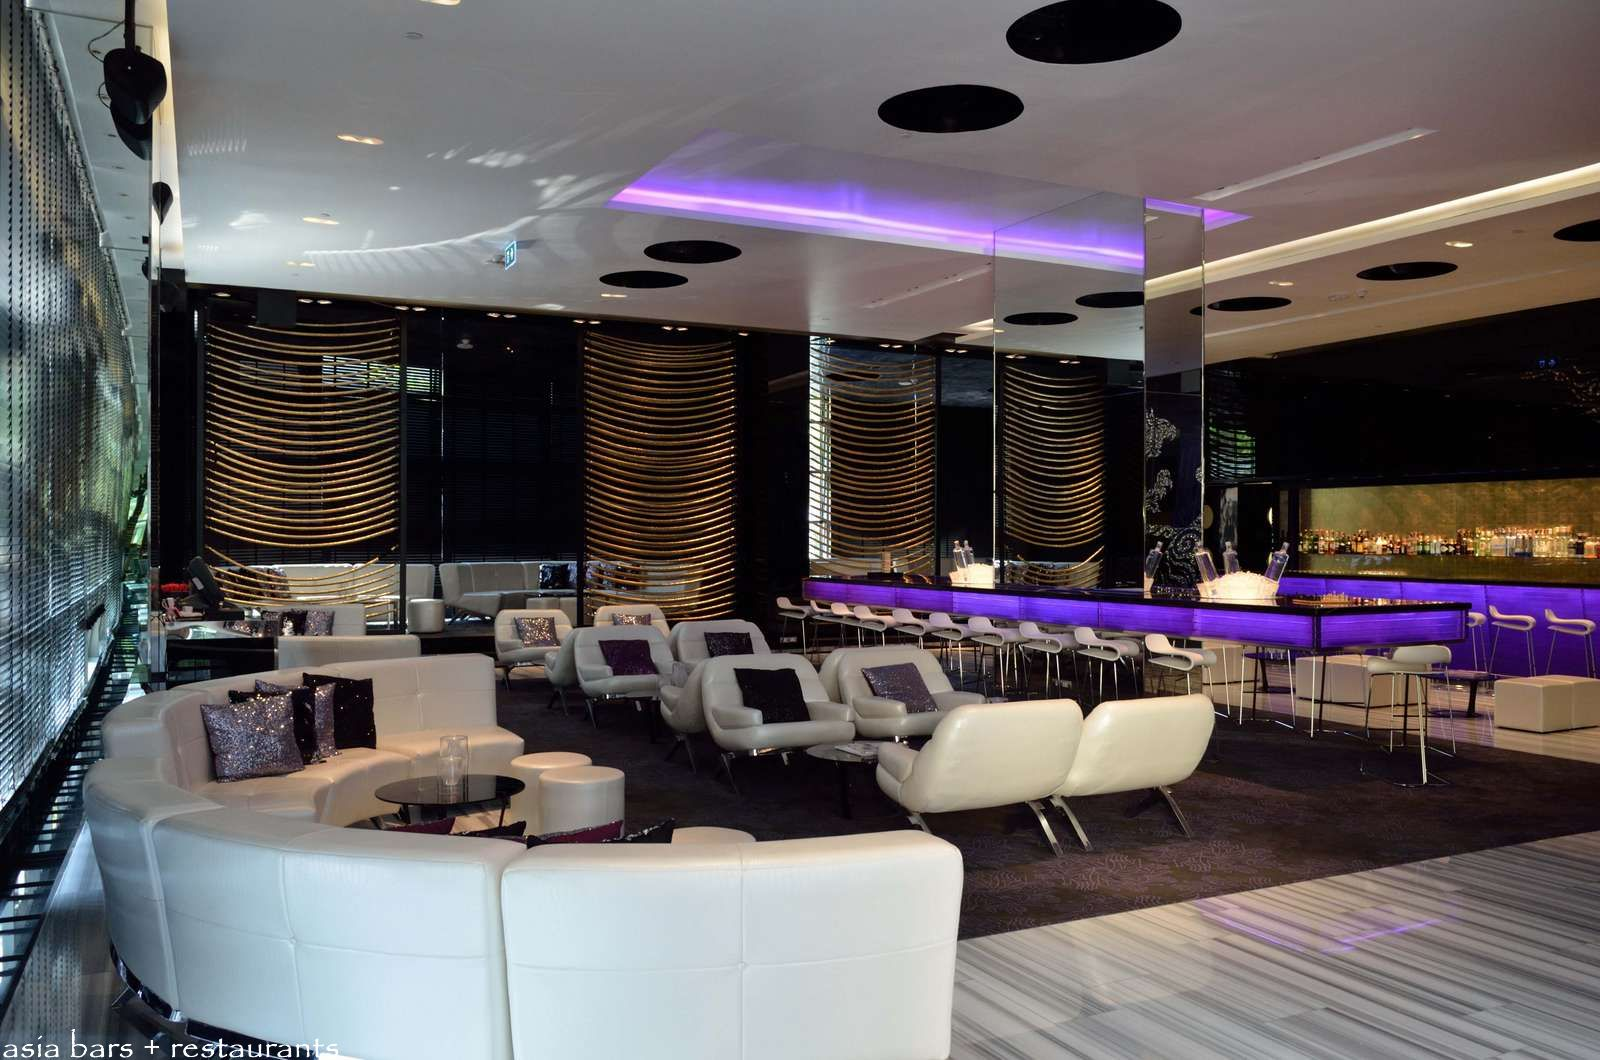 Woobar bar lounge at w bangkok asia bars restaurants for Home lounge design